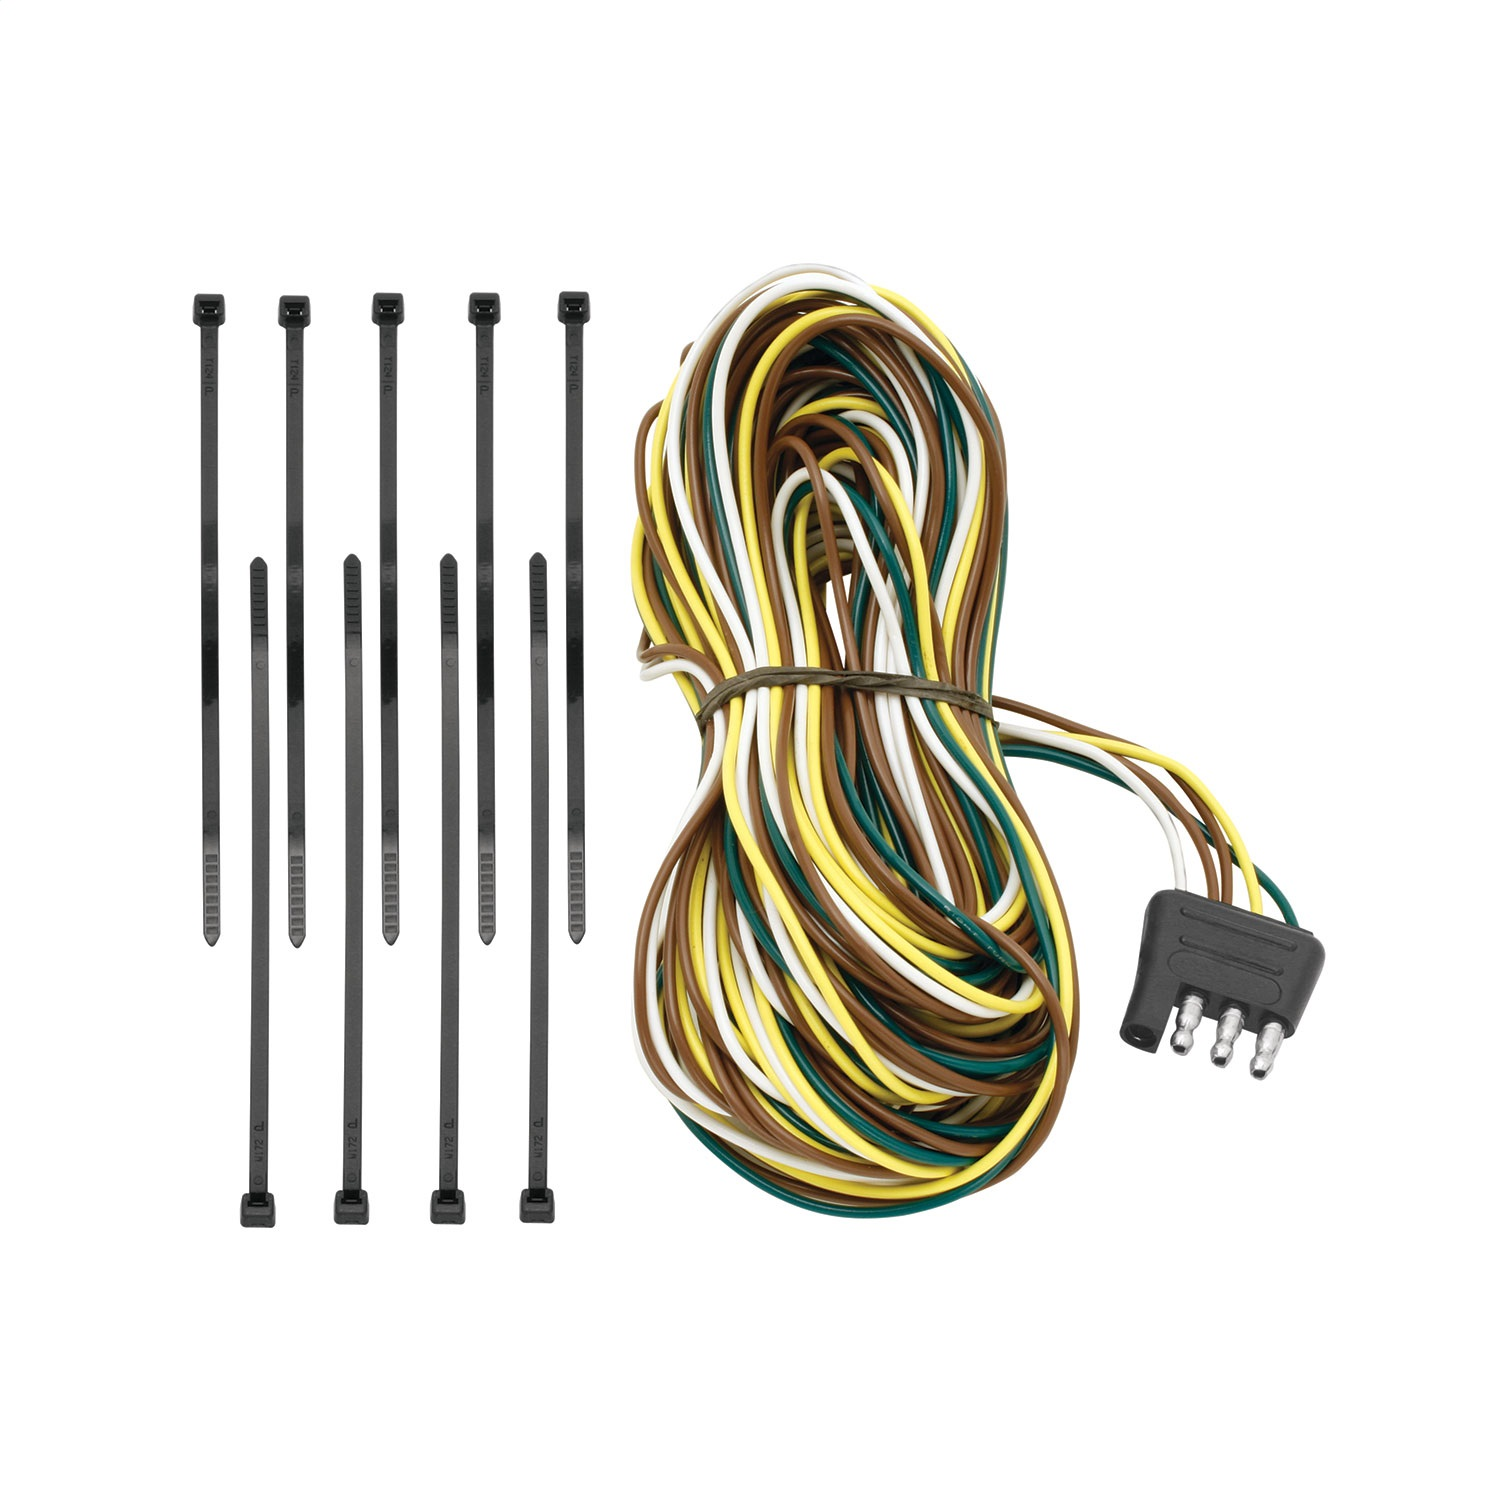 hight resolution of 4 flat trailer end connector dual tail light wires 25 long replacement auto part easy to install walmart com